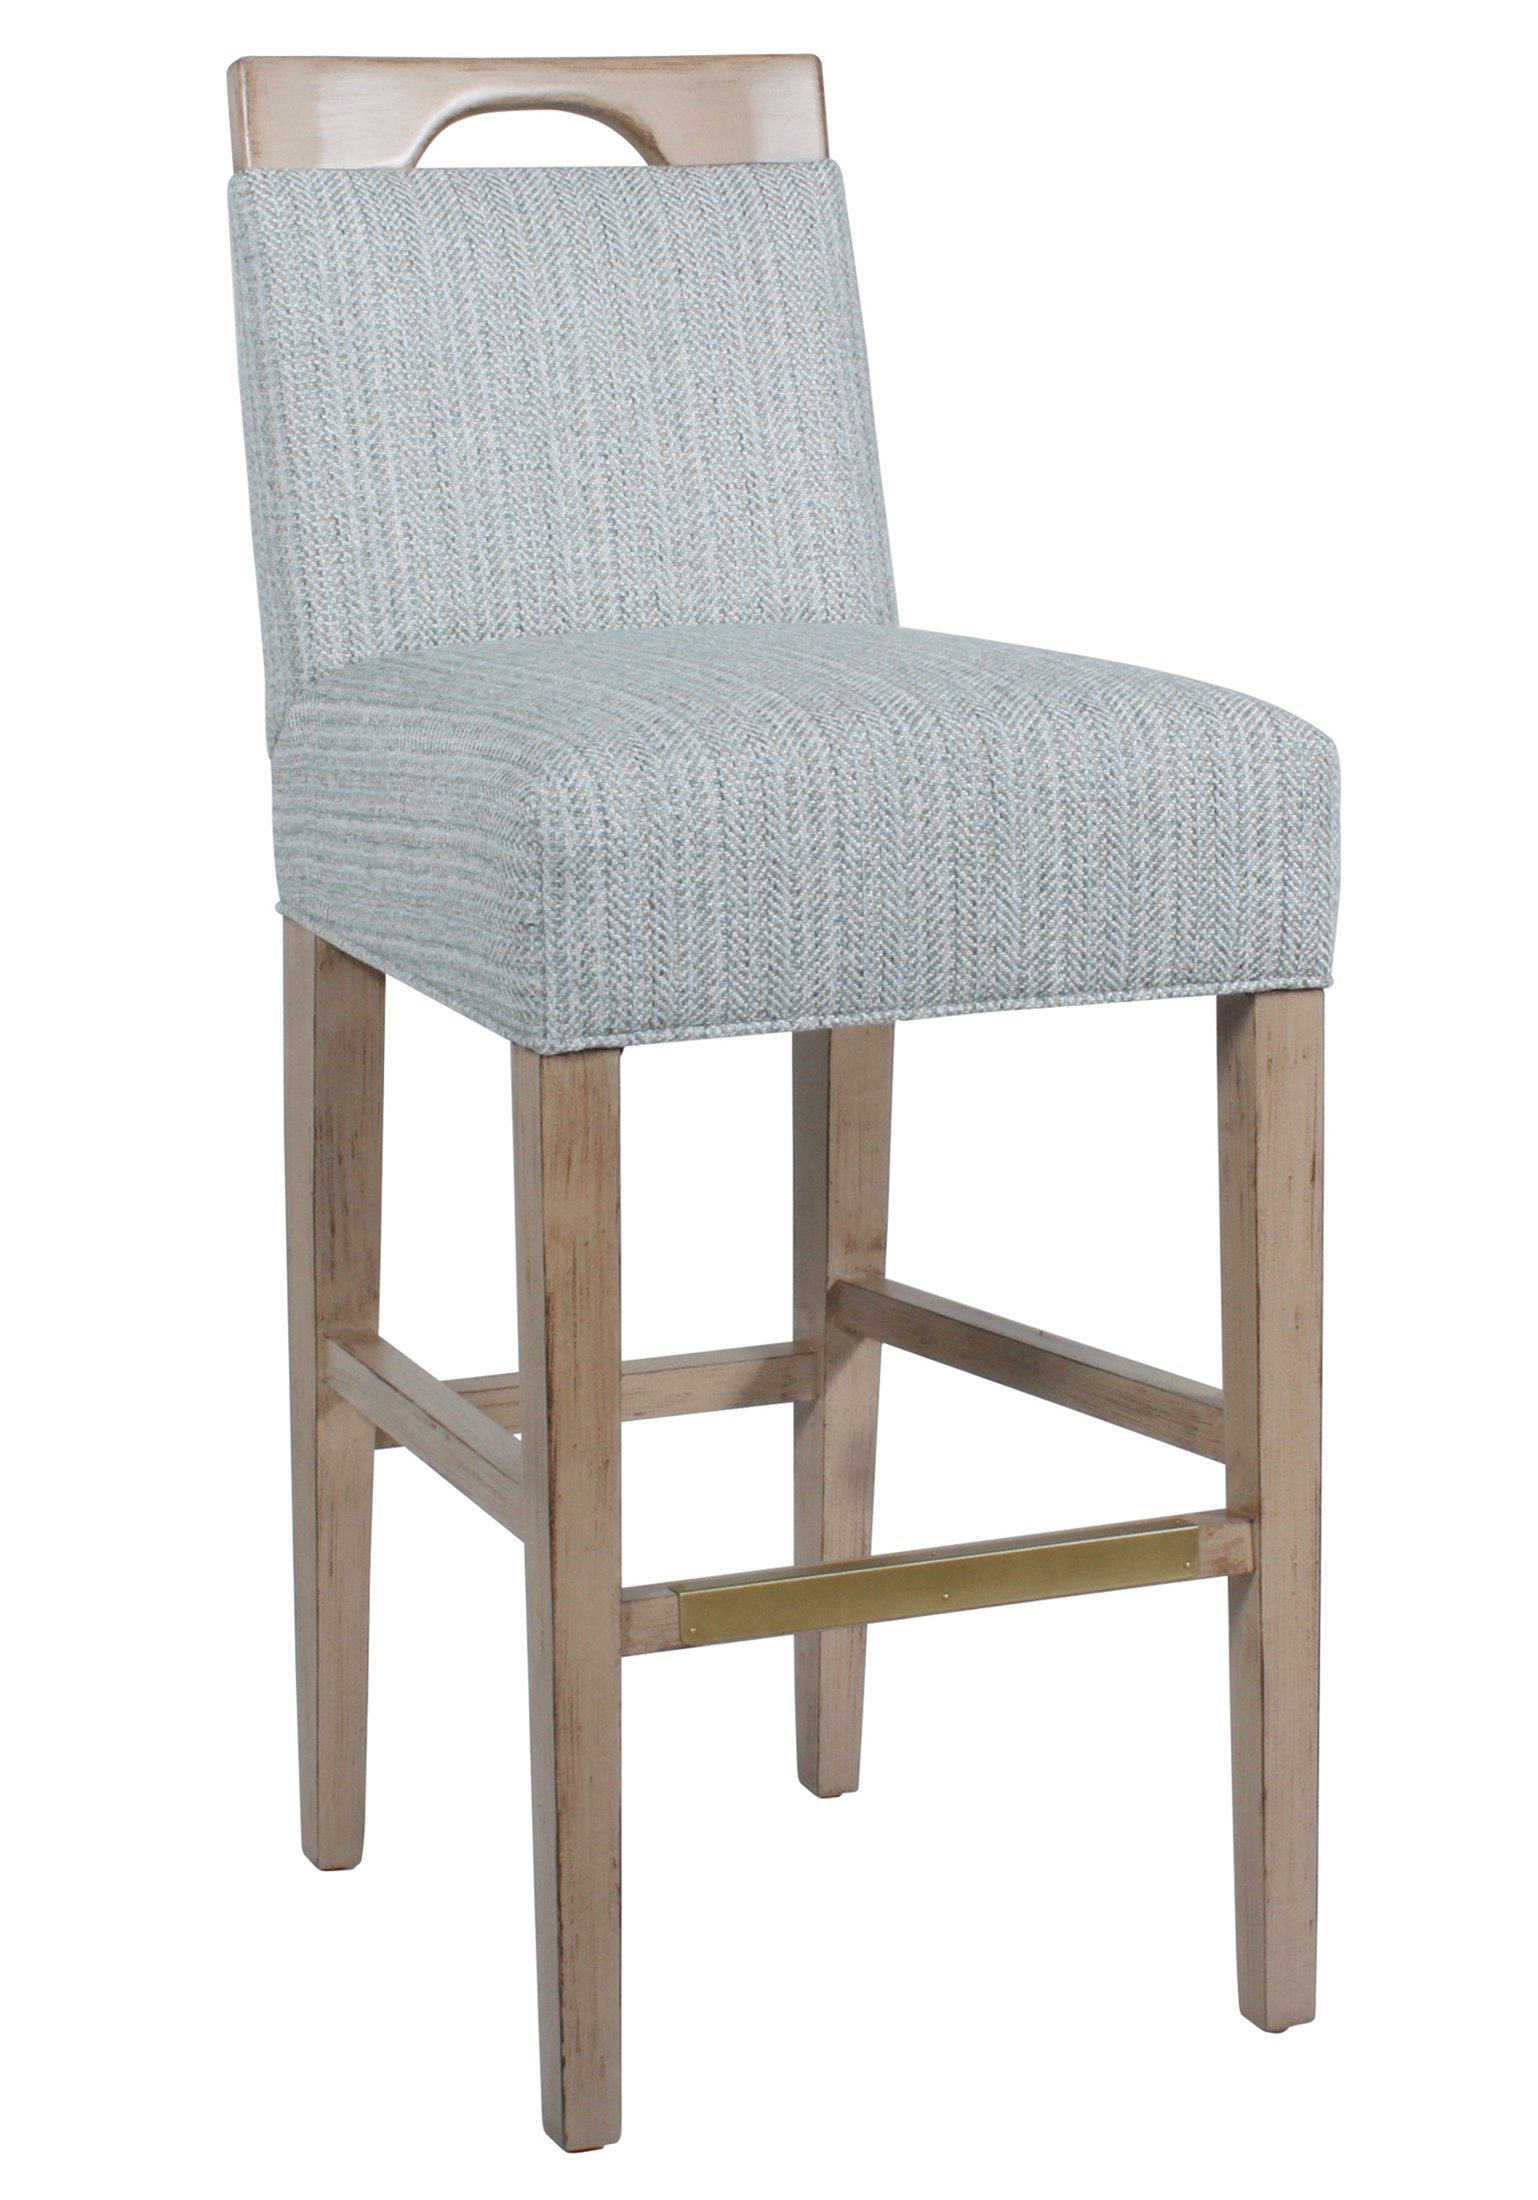 Awesome 632 Bar Stool 632C Counter Height New April 2019 Cox Cjindustries Chair Design For Home Cjindustriesco